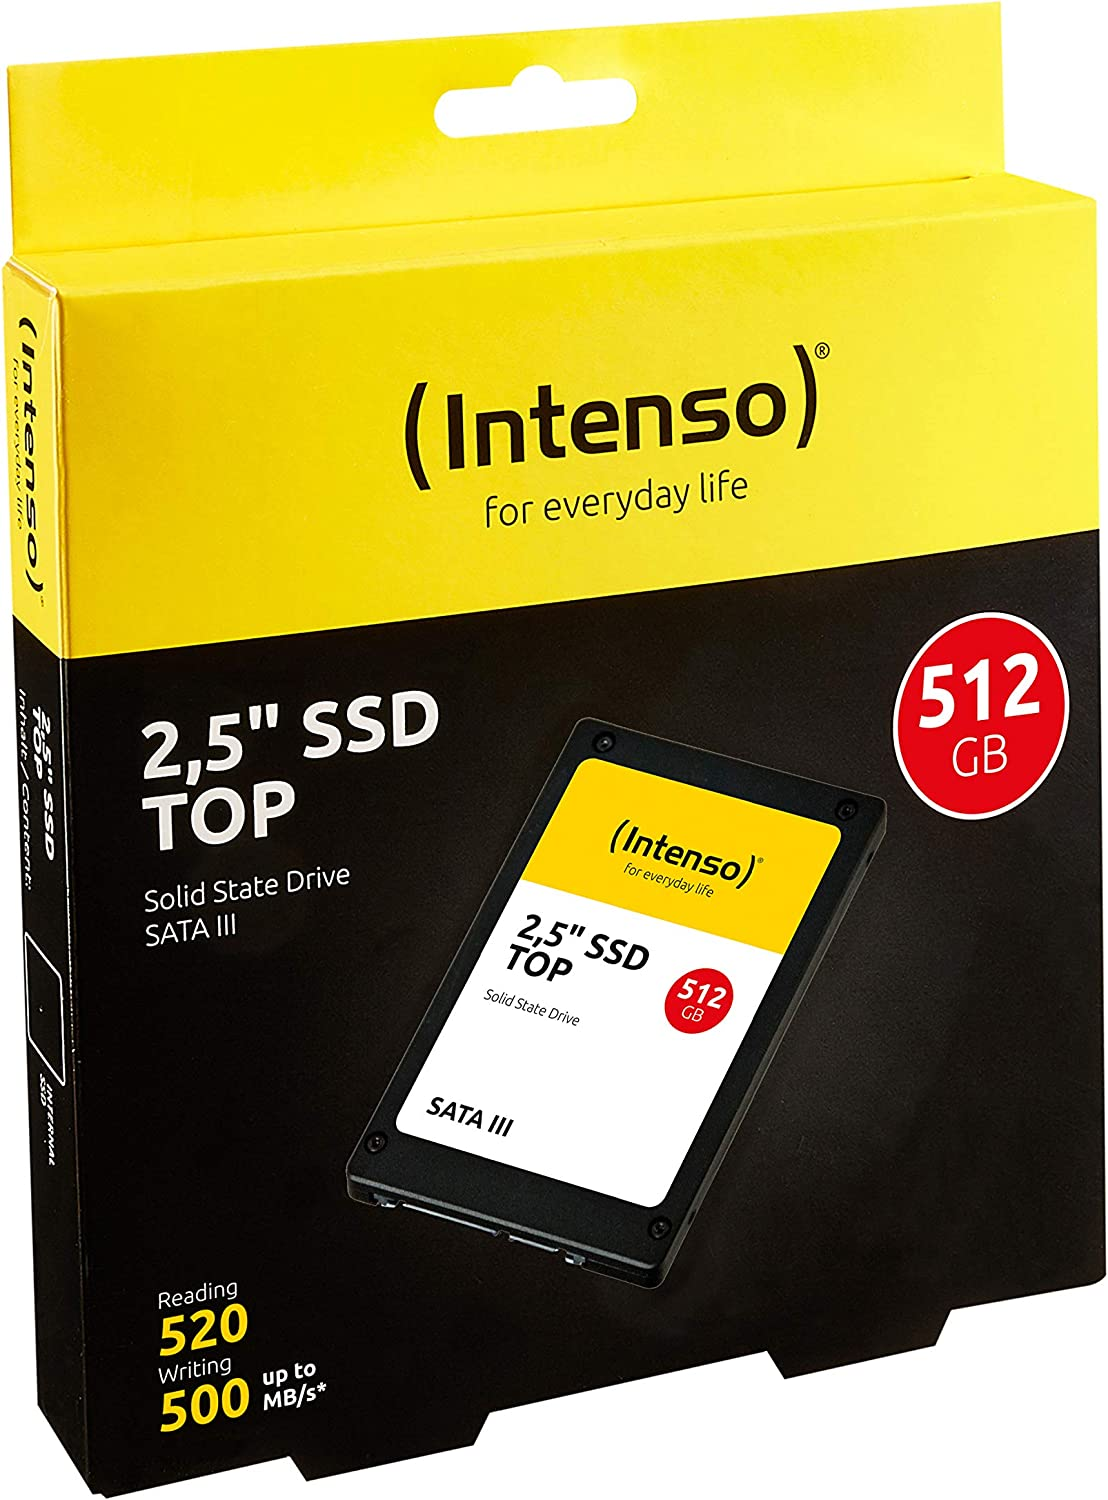 Intenso Unidad de estado sólido TOP SSD 512 GB, negro: Intenso ...